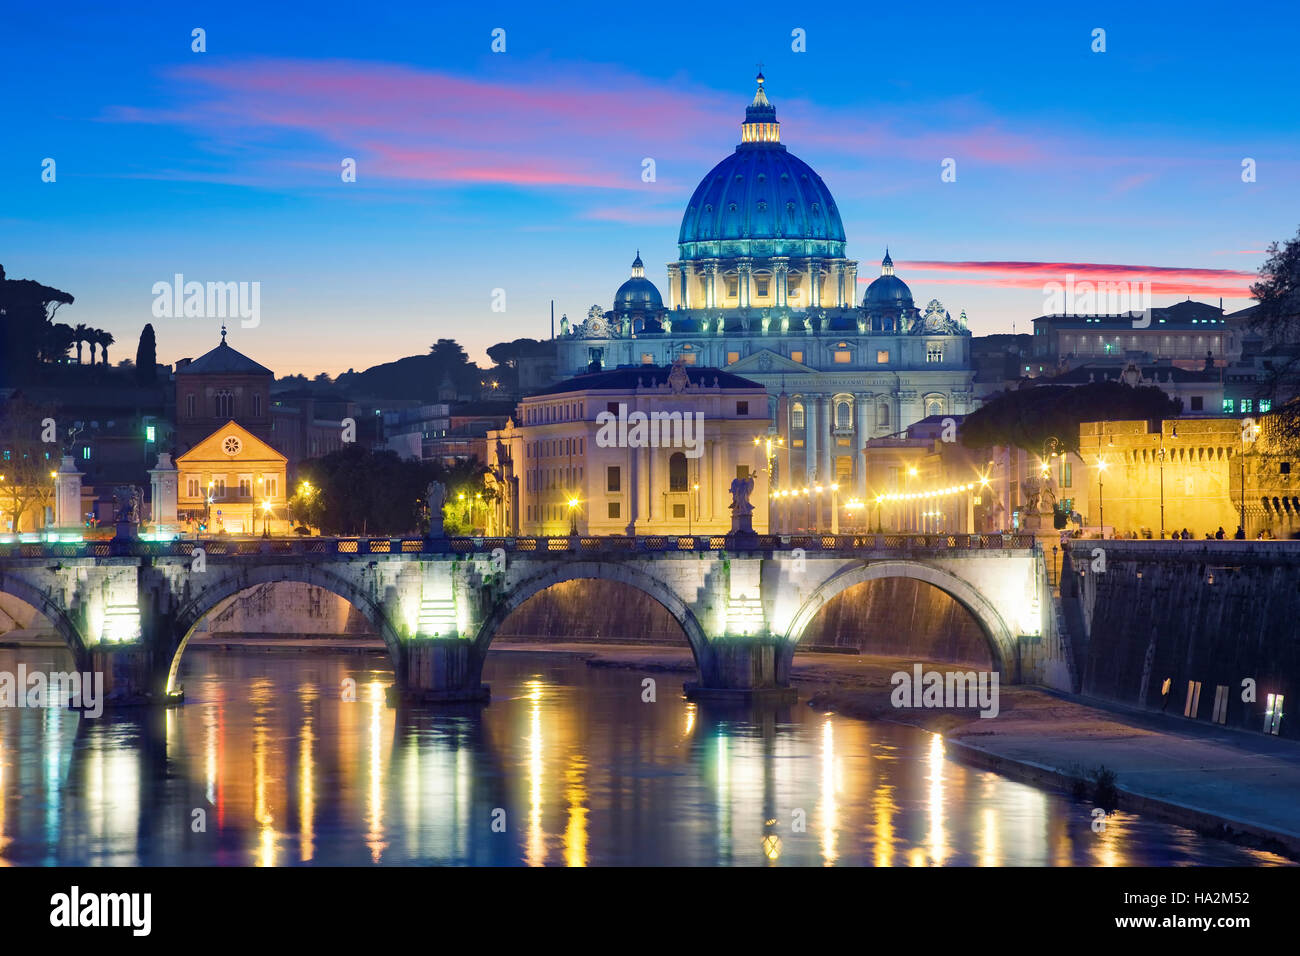 St Peter's Basilica in Rome, Italy - Stock Image